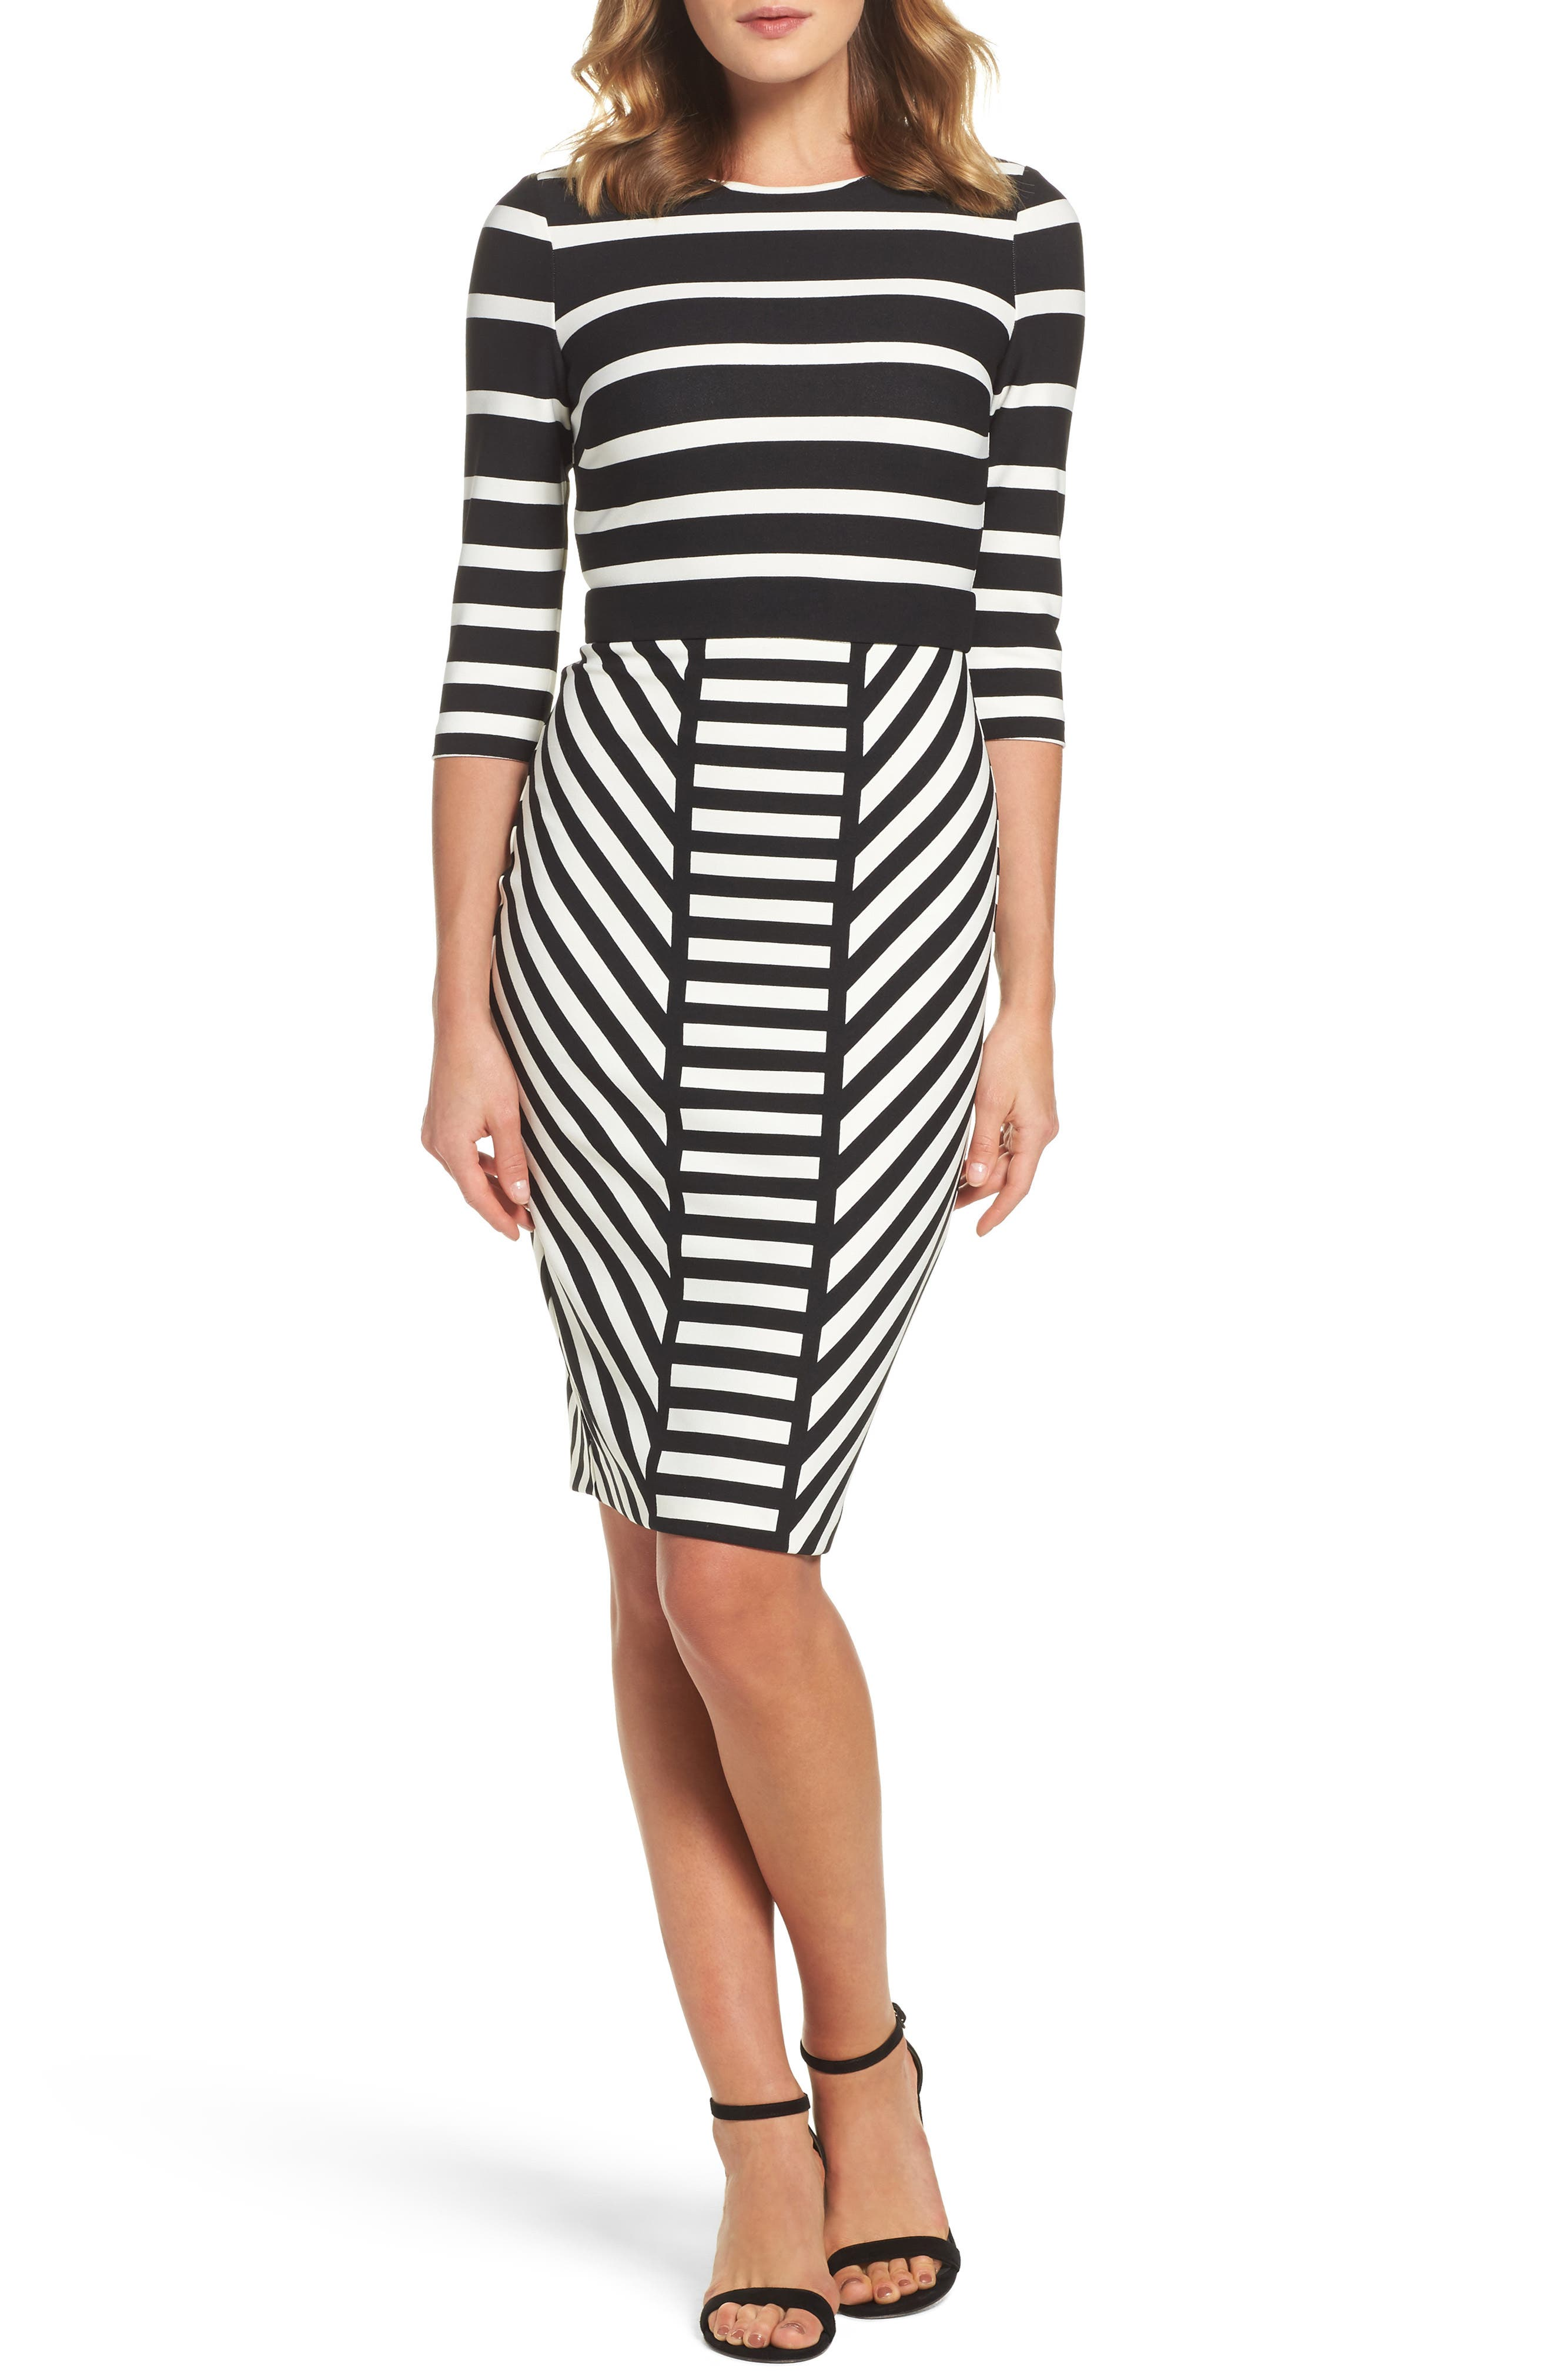 Alternate Image 1 Selected - Gabby Skye Stripe Sheath Dress